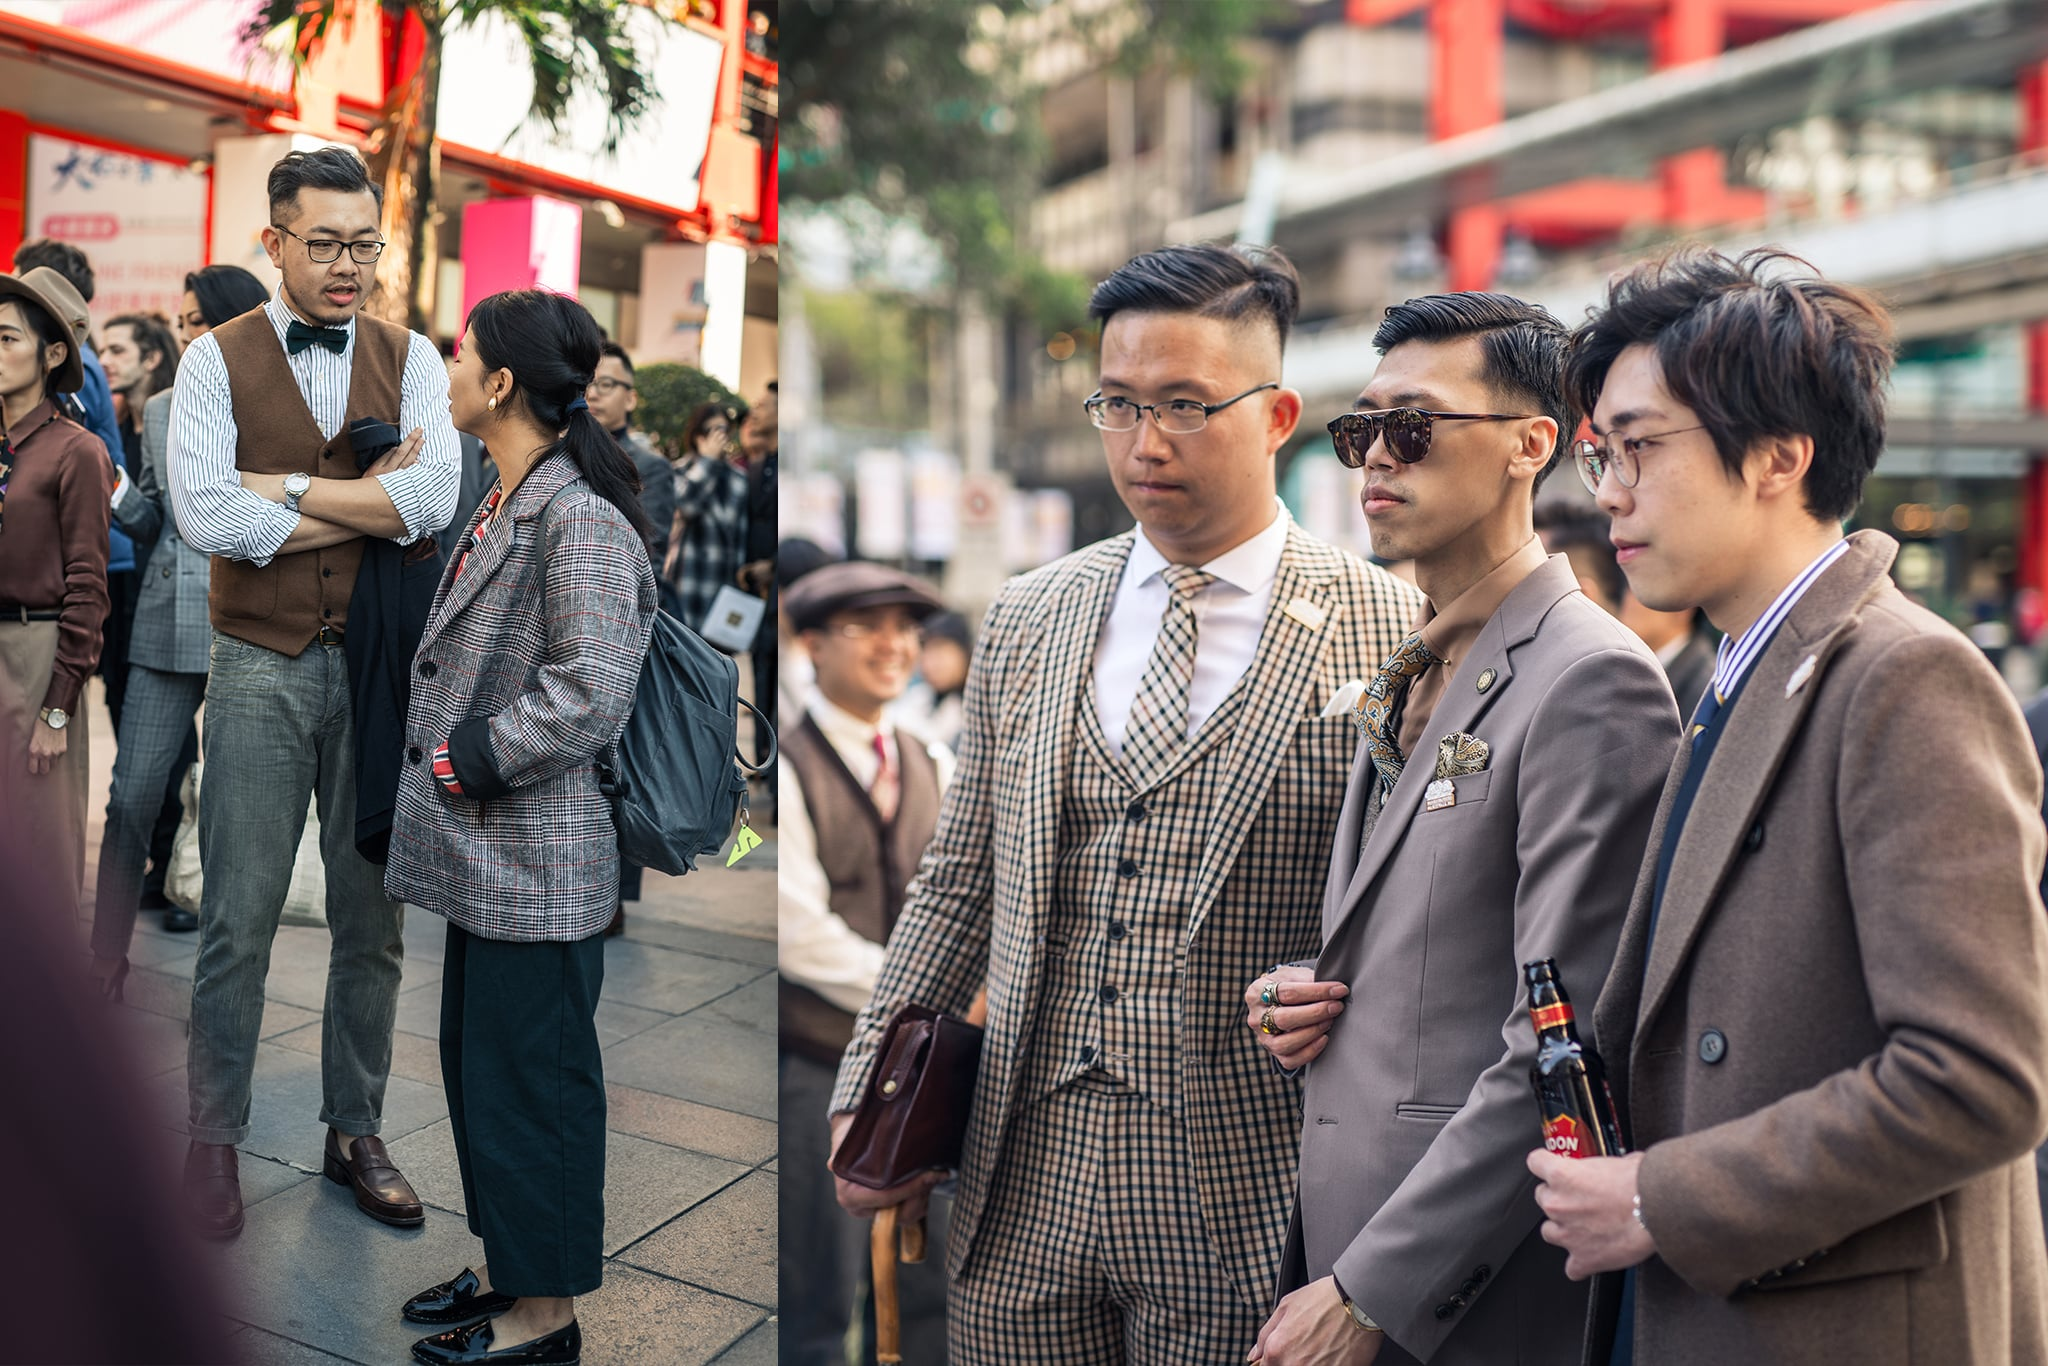 Suitwalk-2018-gq-taiwan-HEX Eyewear-Sunglasses-台北國際紳裝日